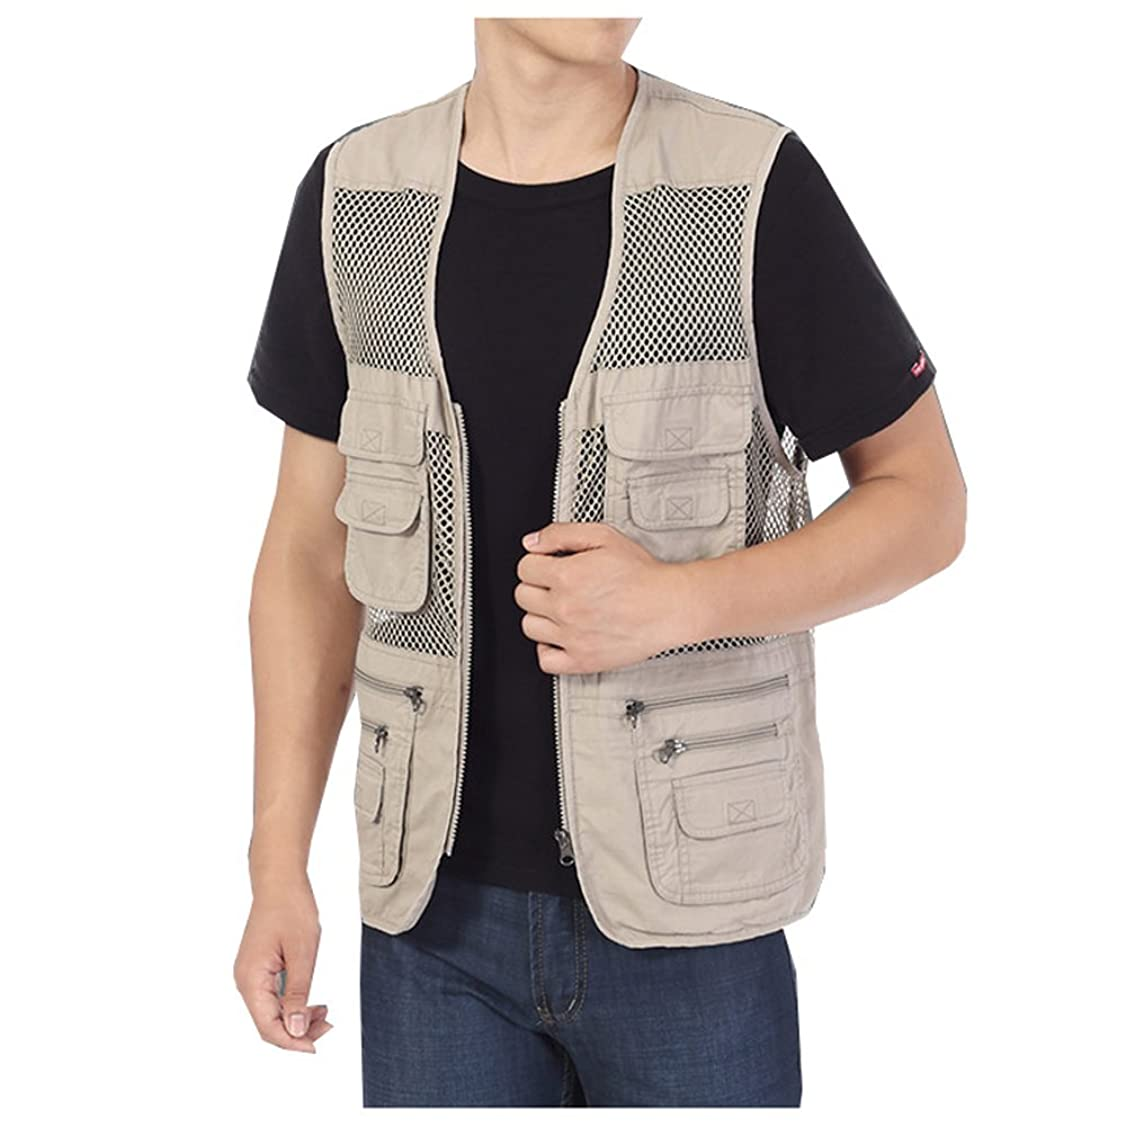 Kedera Men's Mesh Fishing Vest Photography Work Multi-Pockets Outdoors Journalist's Vest Jacket